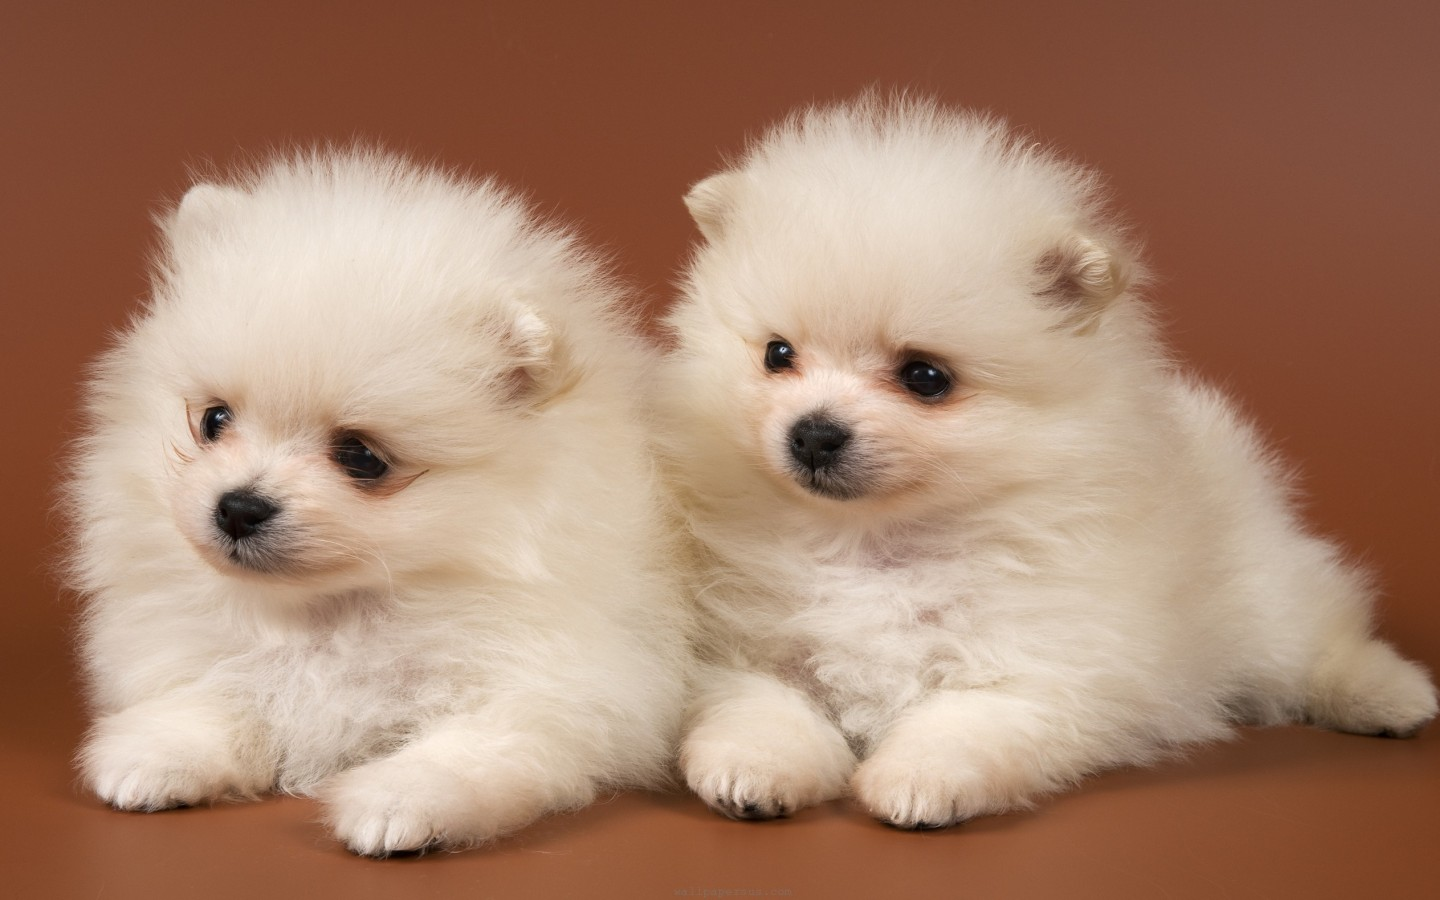 Cute Puppy Wallpapers for Desktop Mobile Backgrounds 1440x900